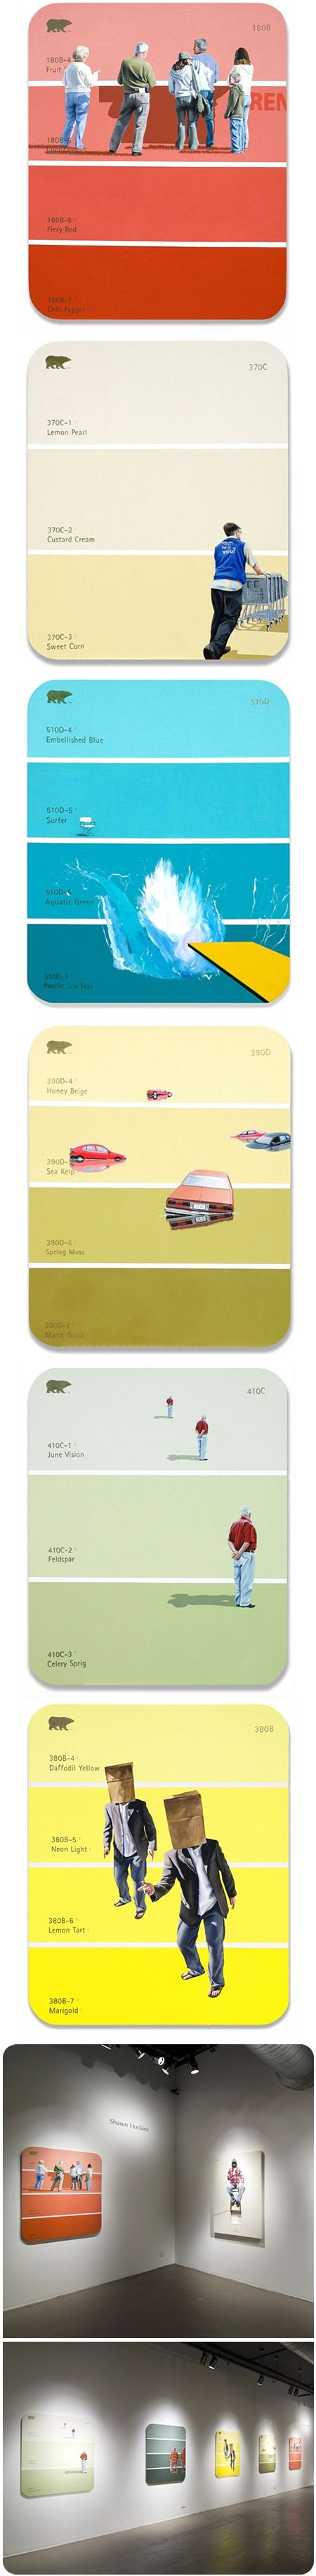 shawn huckins on paint chipsPainting Samples, Painting Swatches, Paint Chips, Jealous Curator, Shawn Huckins, Colors Swatches, Artists Shawn, Shaw Huckins, Painting Chips Art